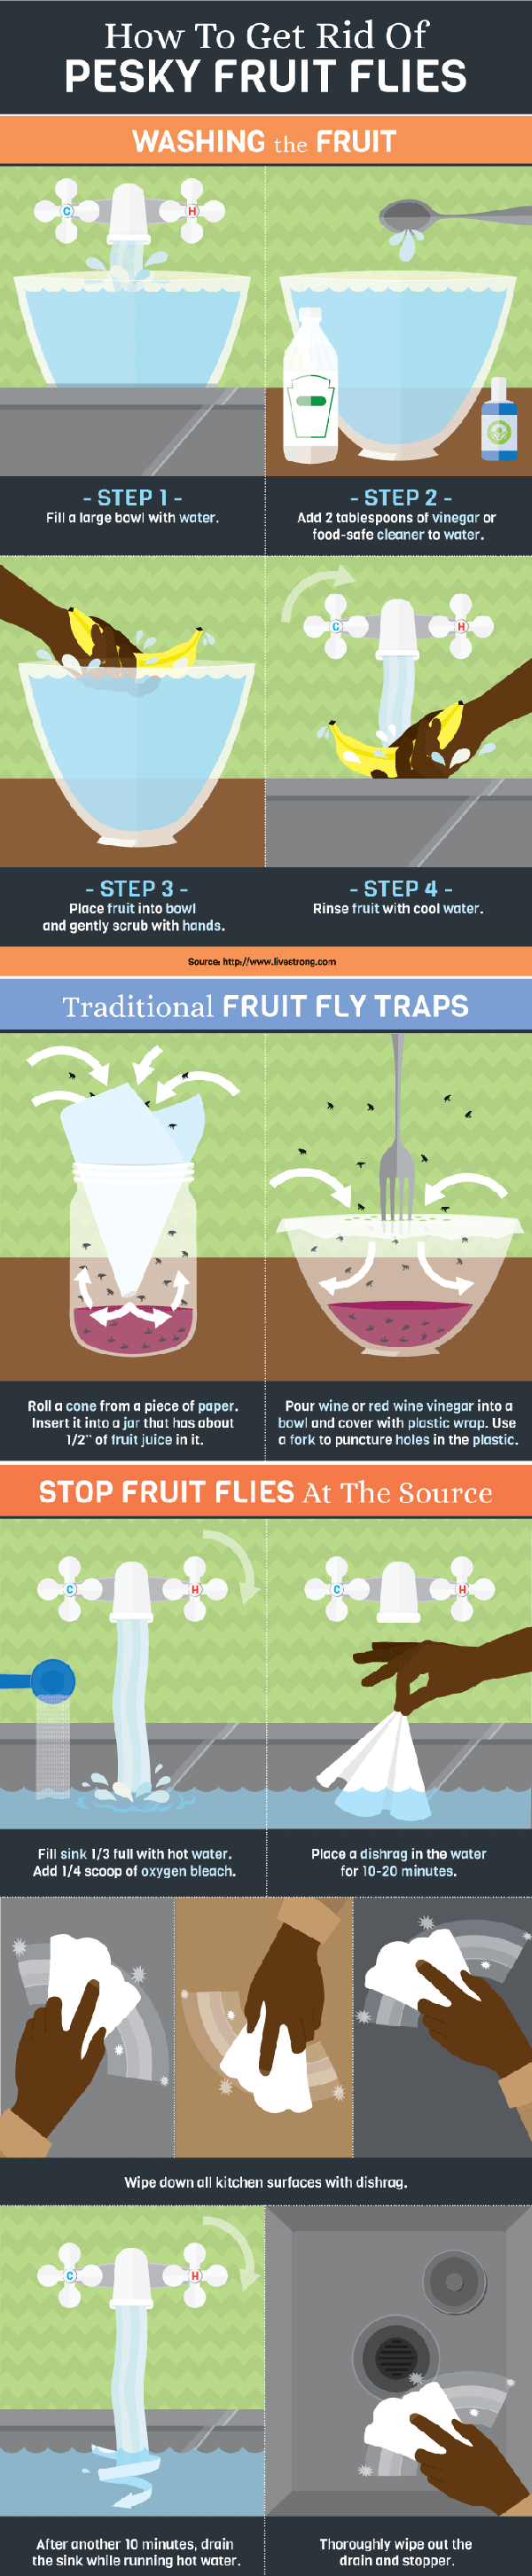 Dealing With Fruit Flies The Basics Best Way To Get Rid Of Flies